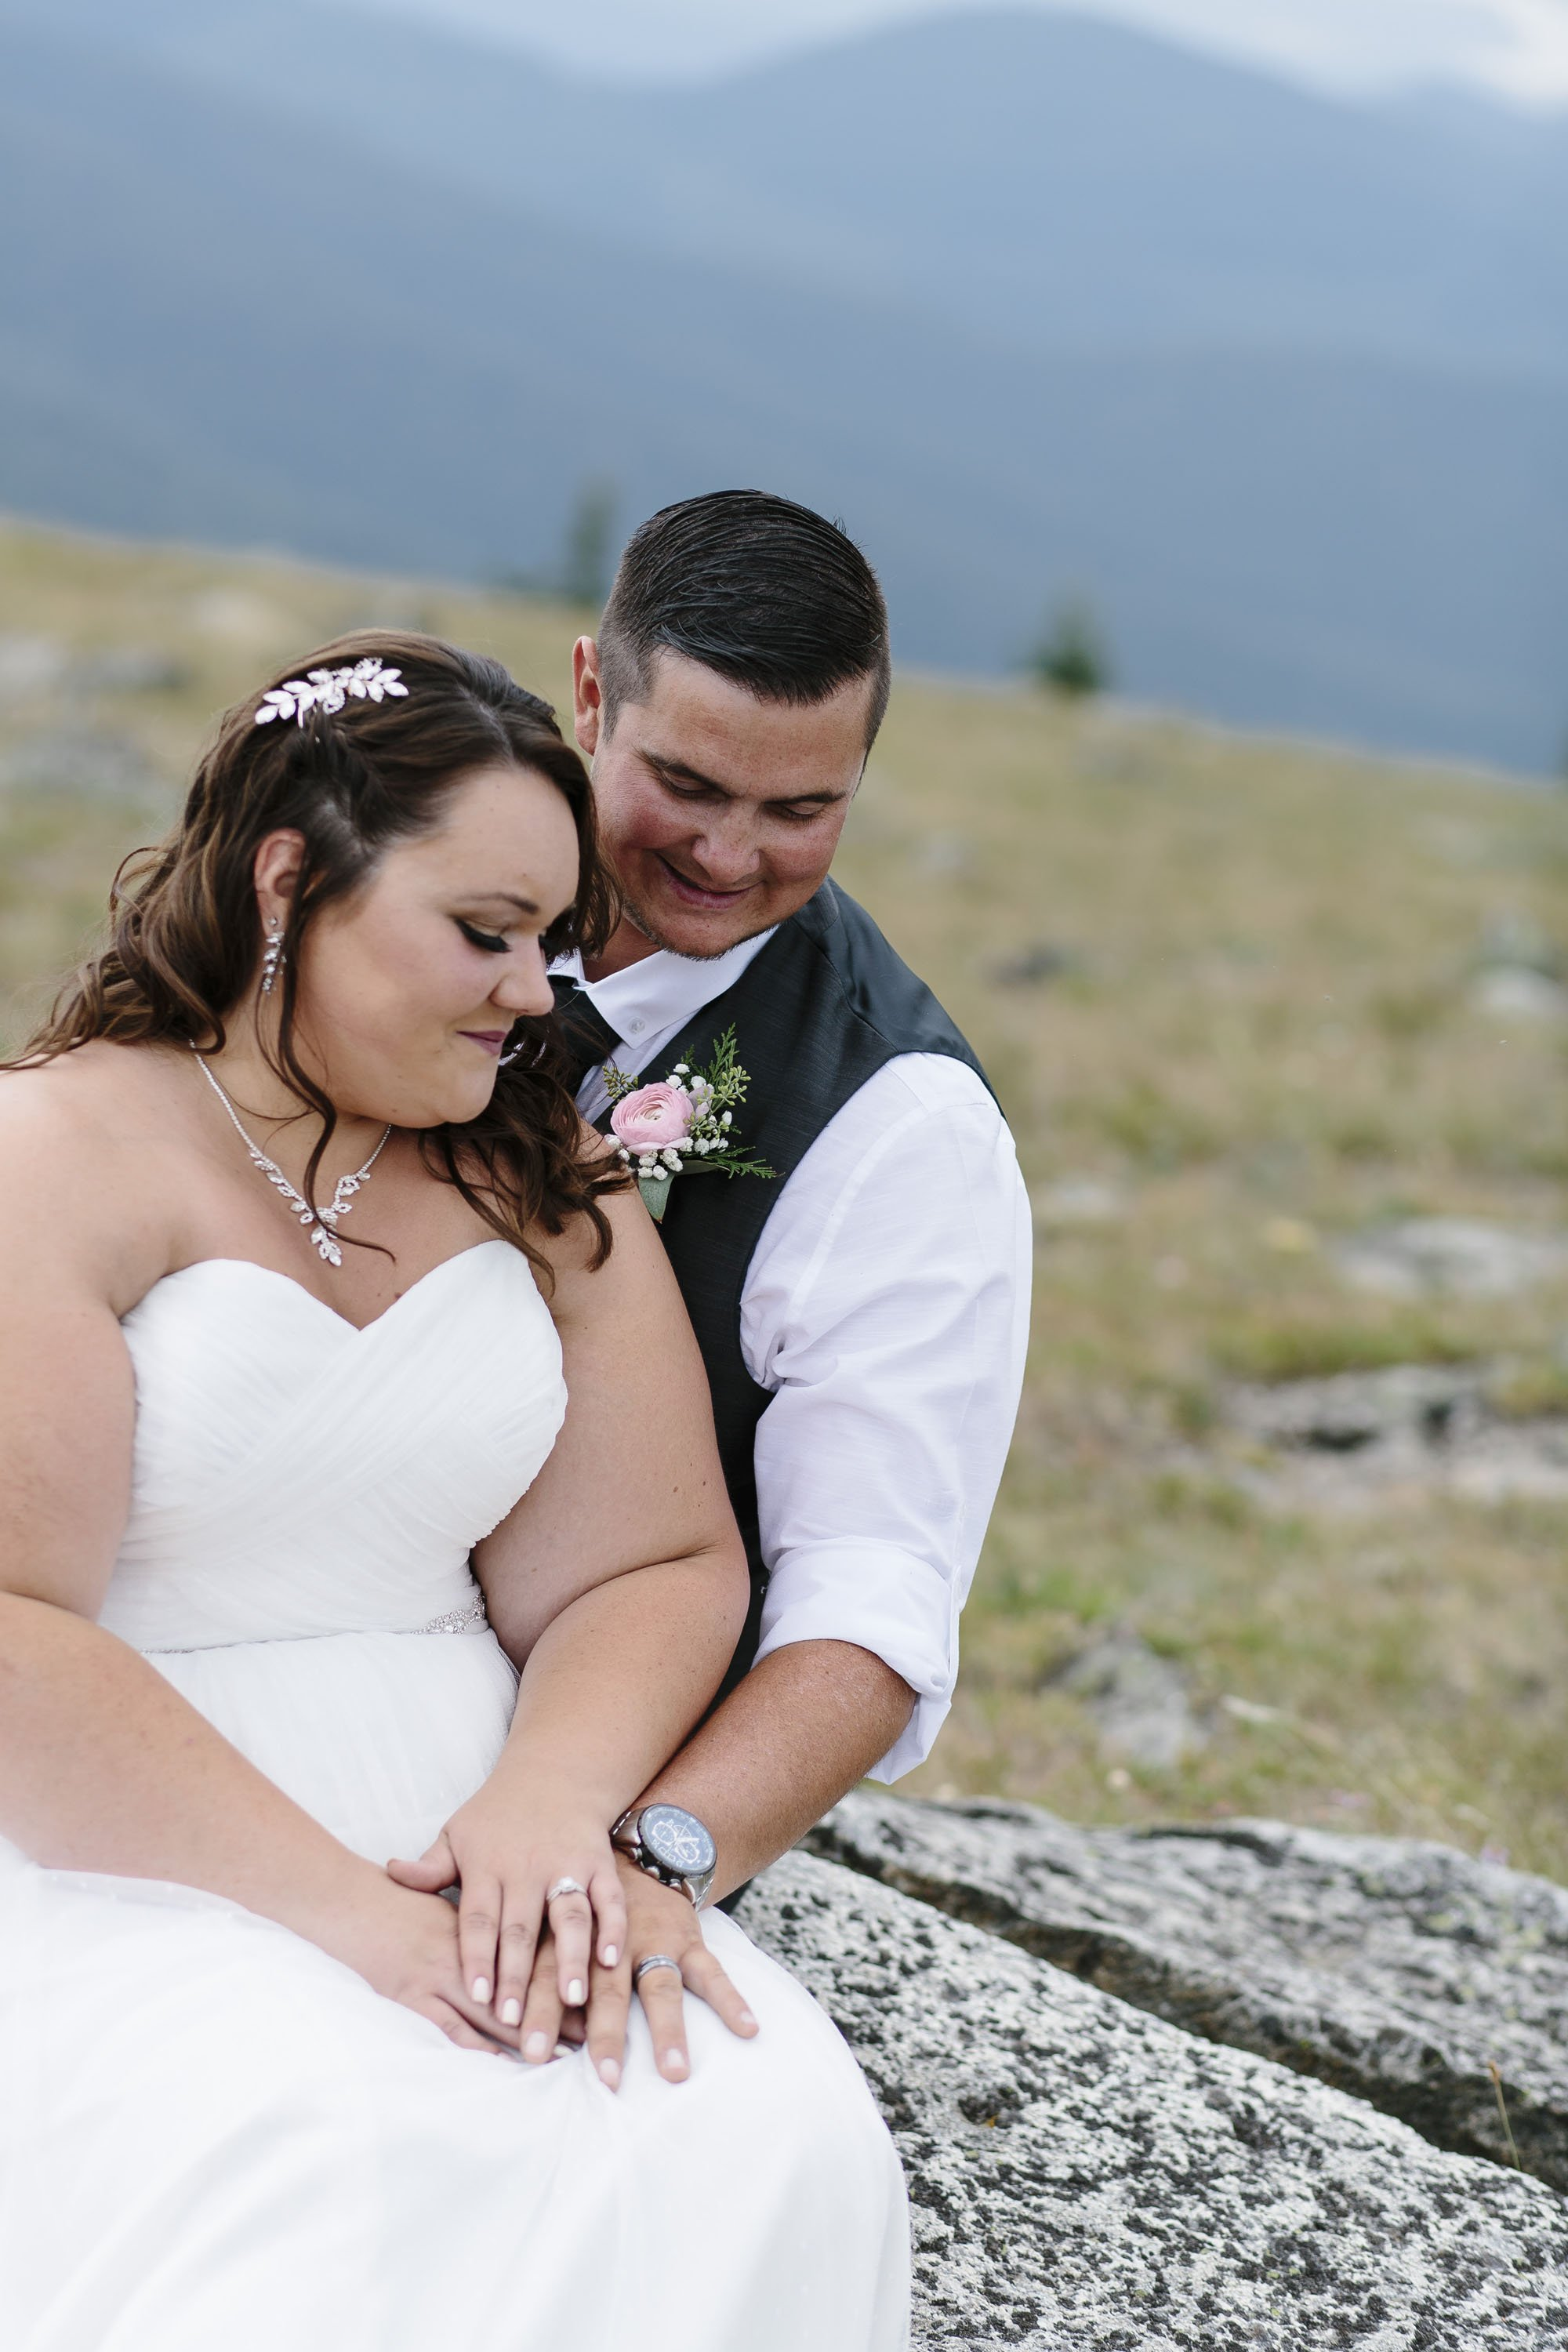 Mt Spokane Elopement Wedding Vista House // Emily Wenzel Photography